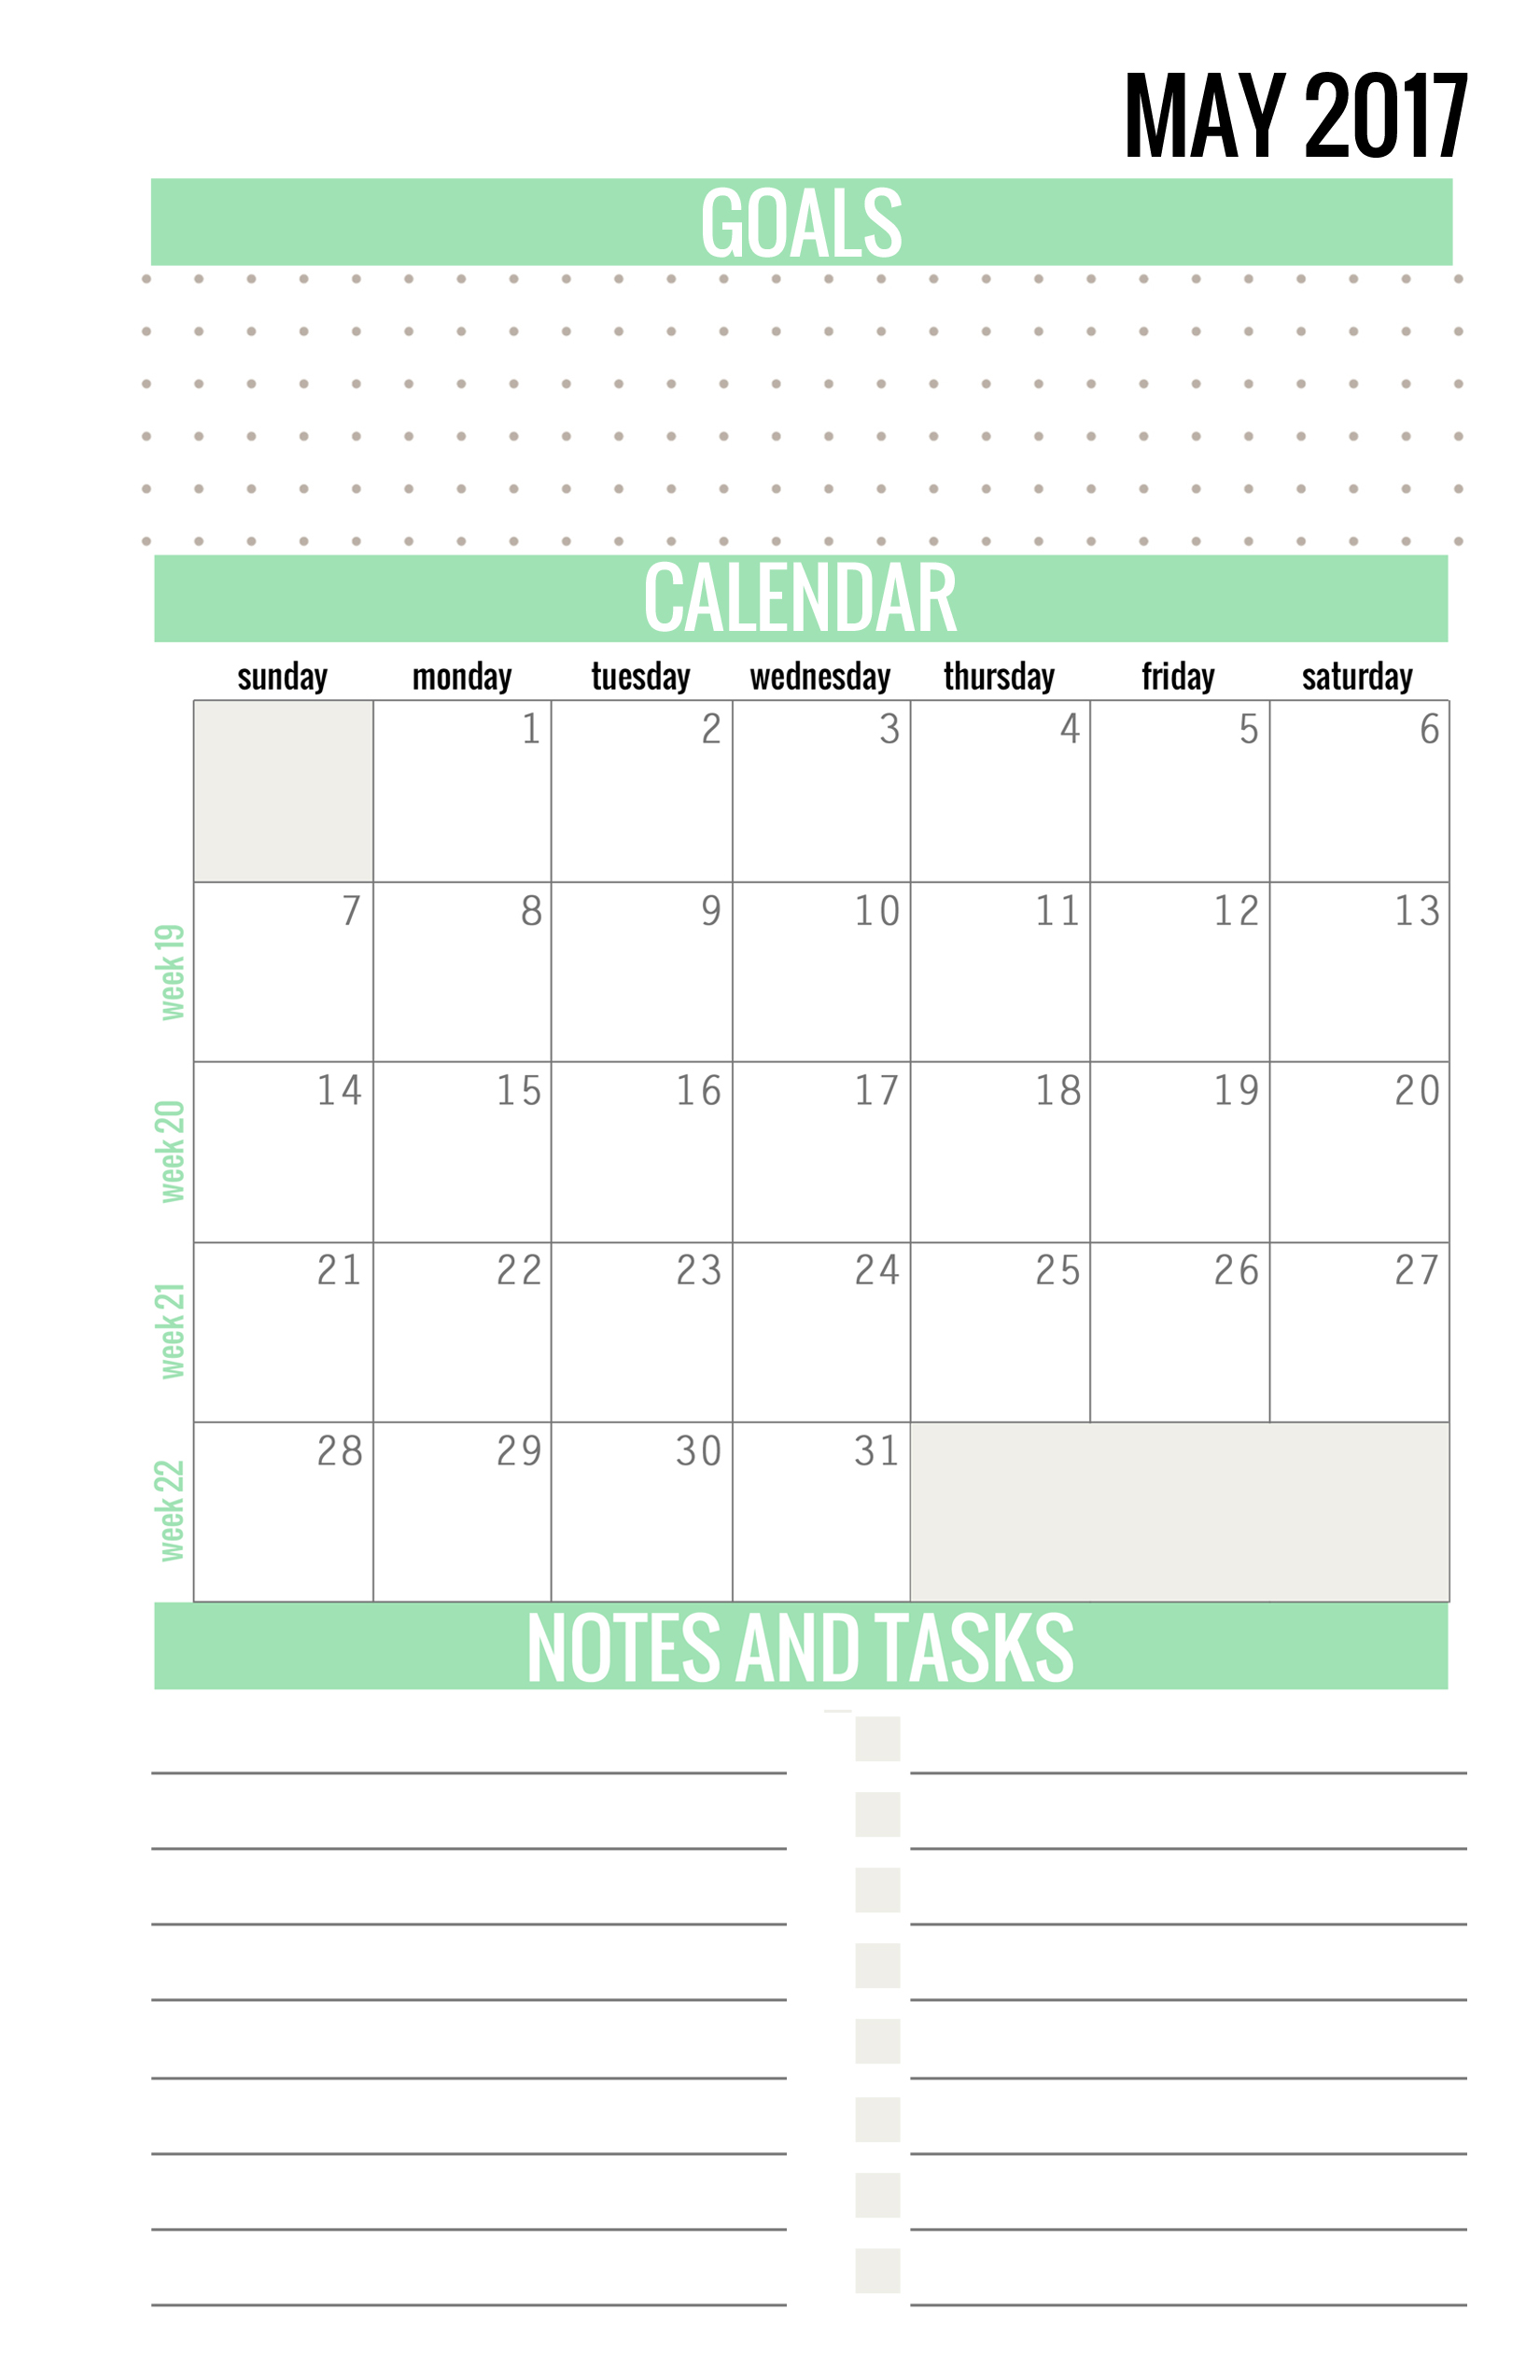 Printable Calendar May 2017 free printable calendars - may 2017 - paper and landscapes